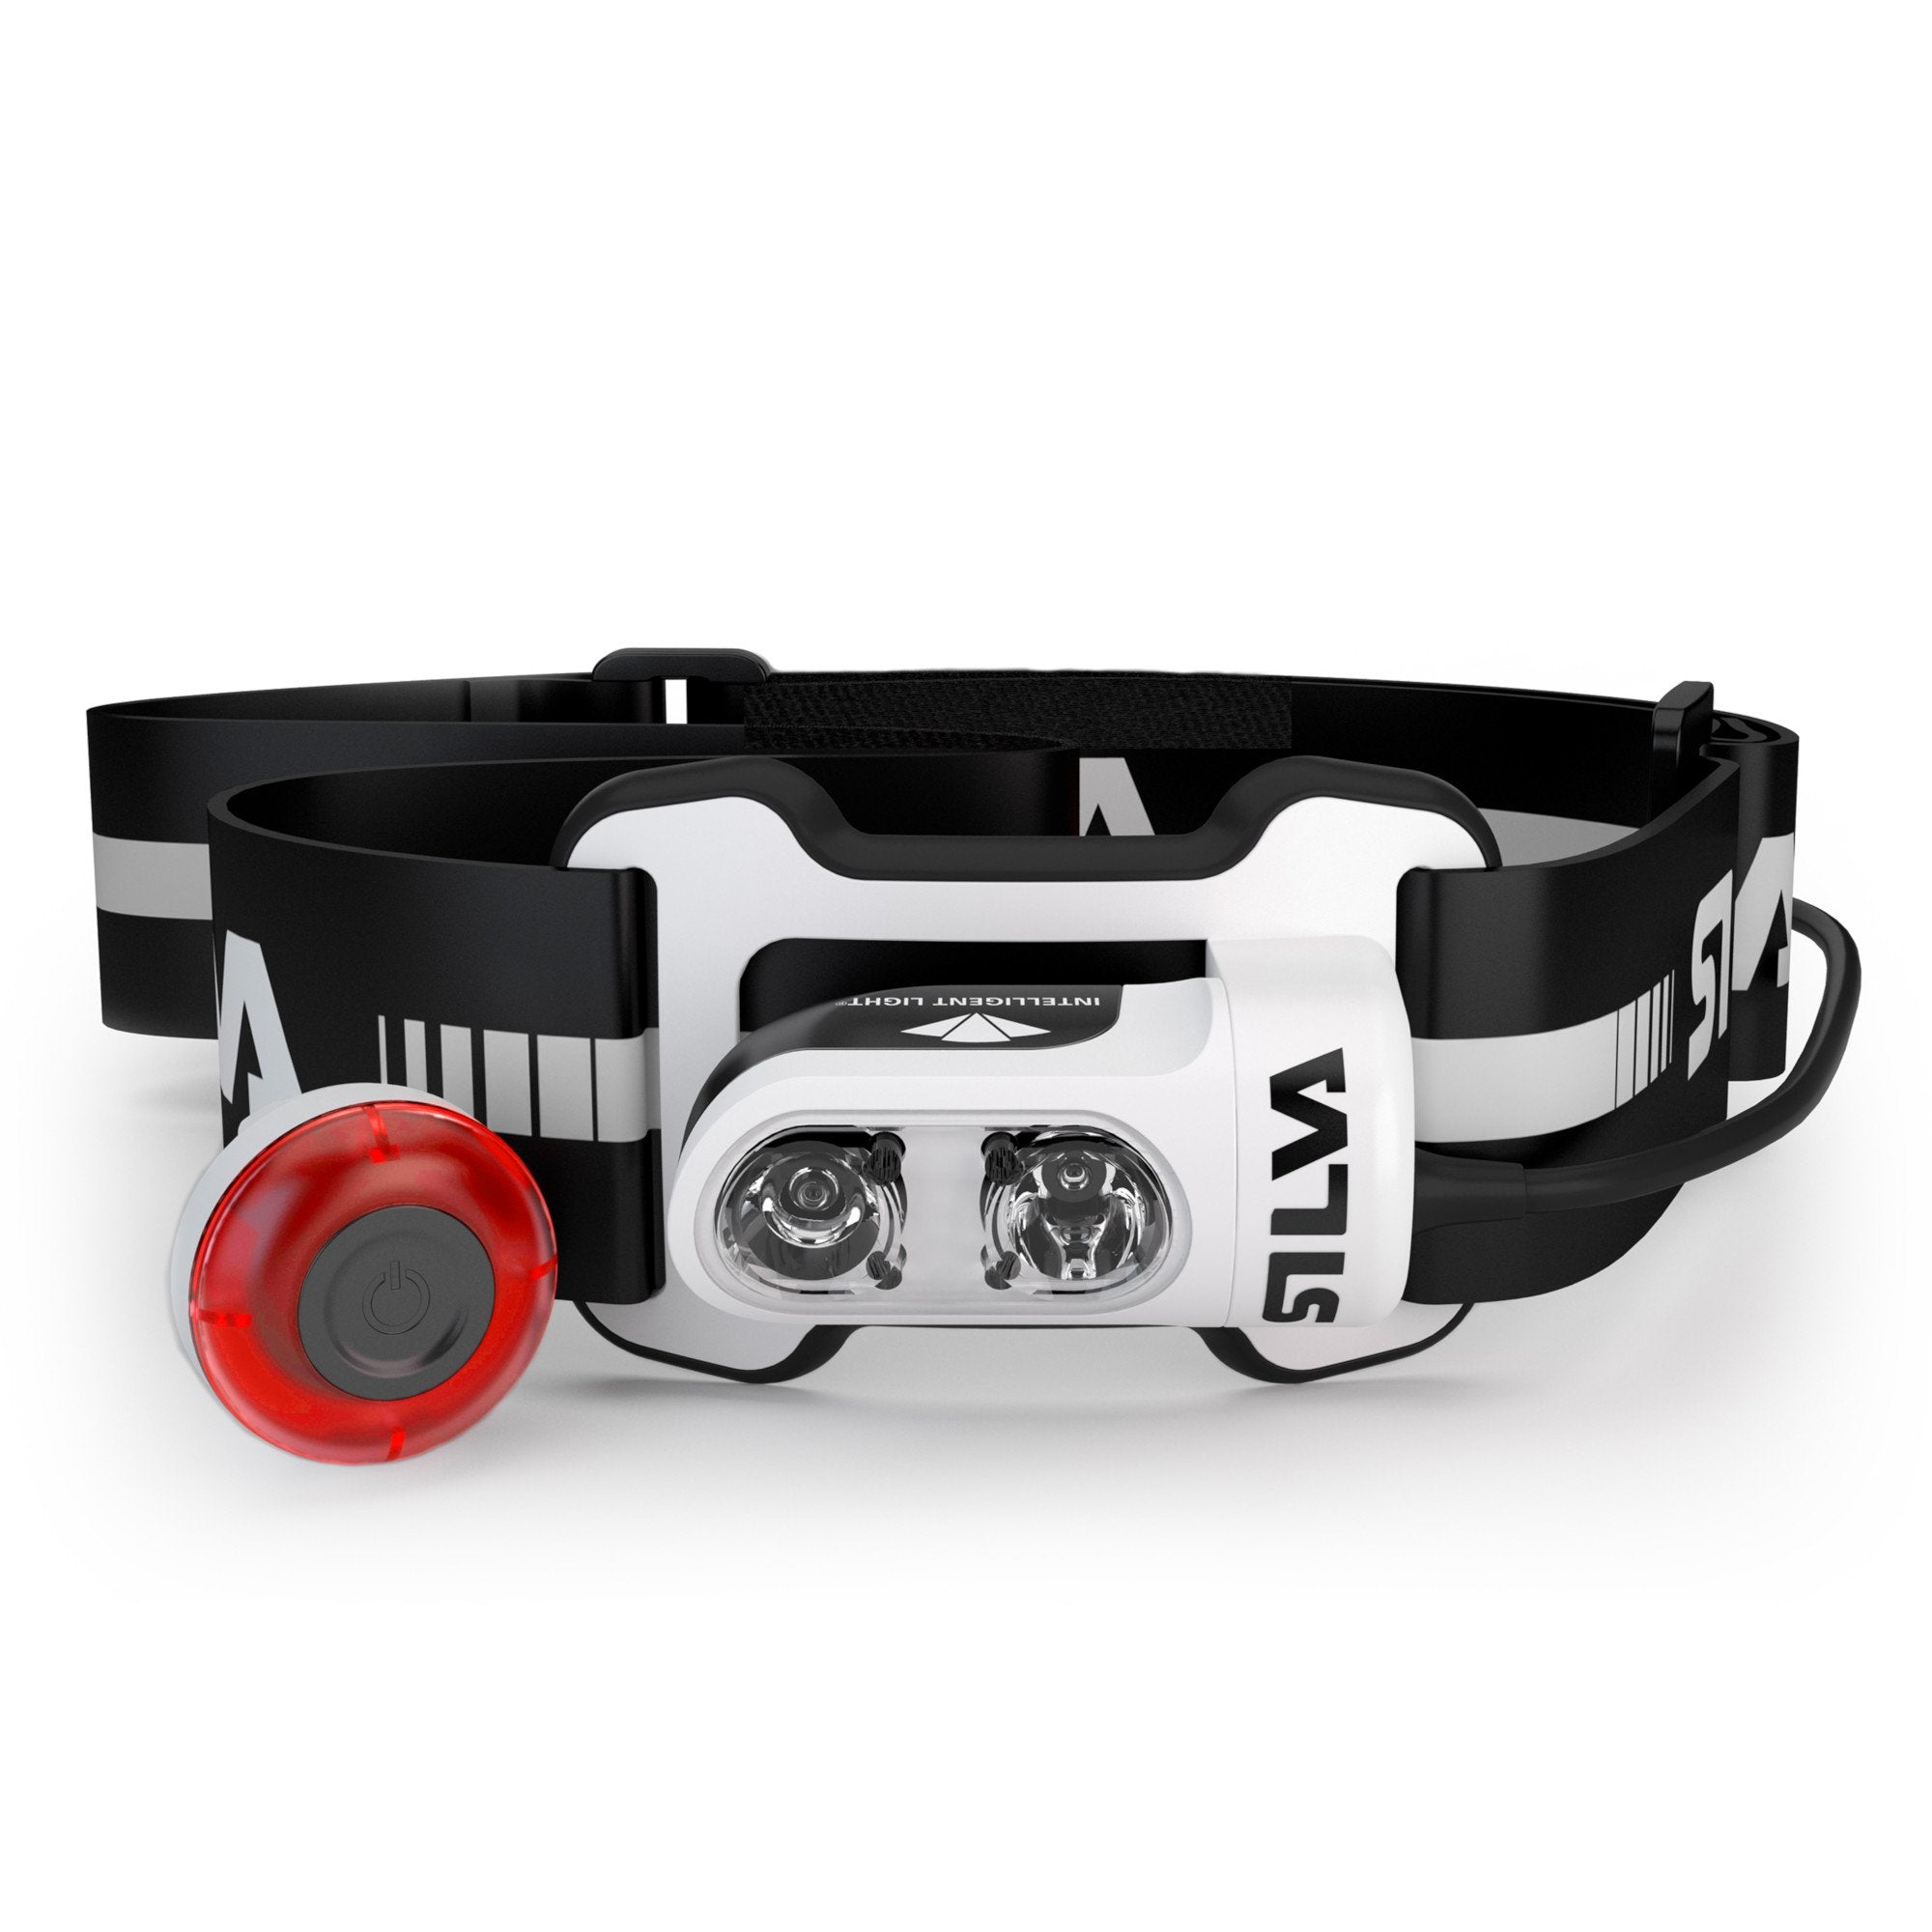 Silva Trail Runner 4 Ultra headlamp, in white and black colours